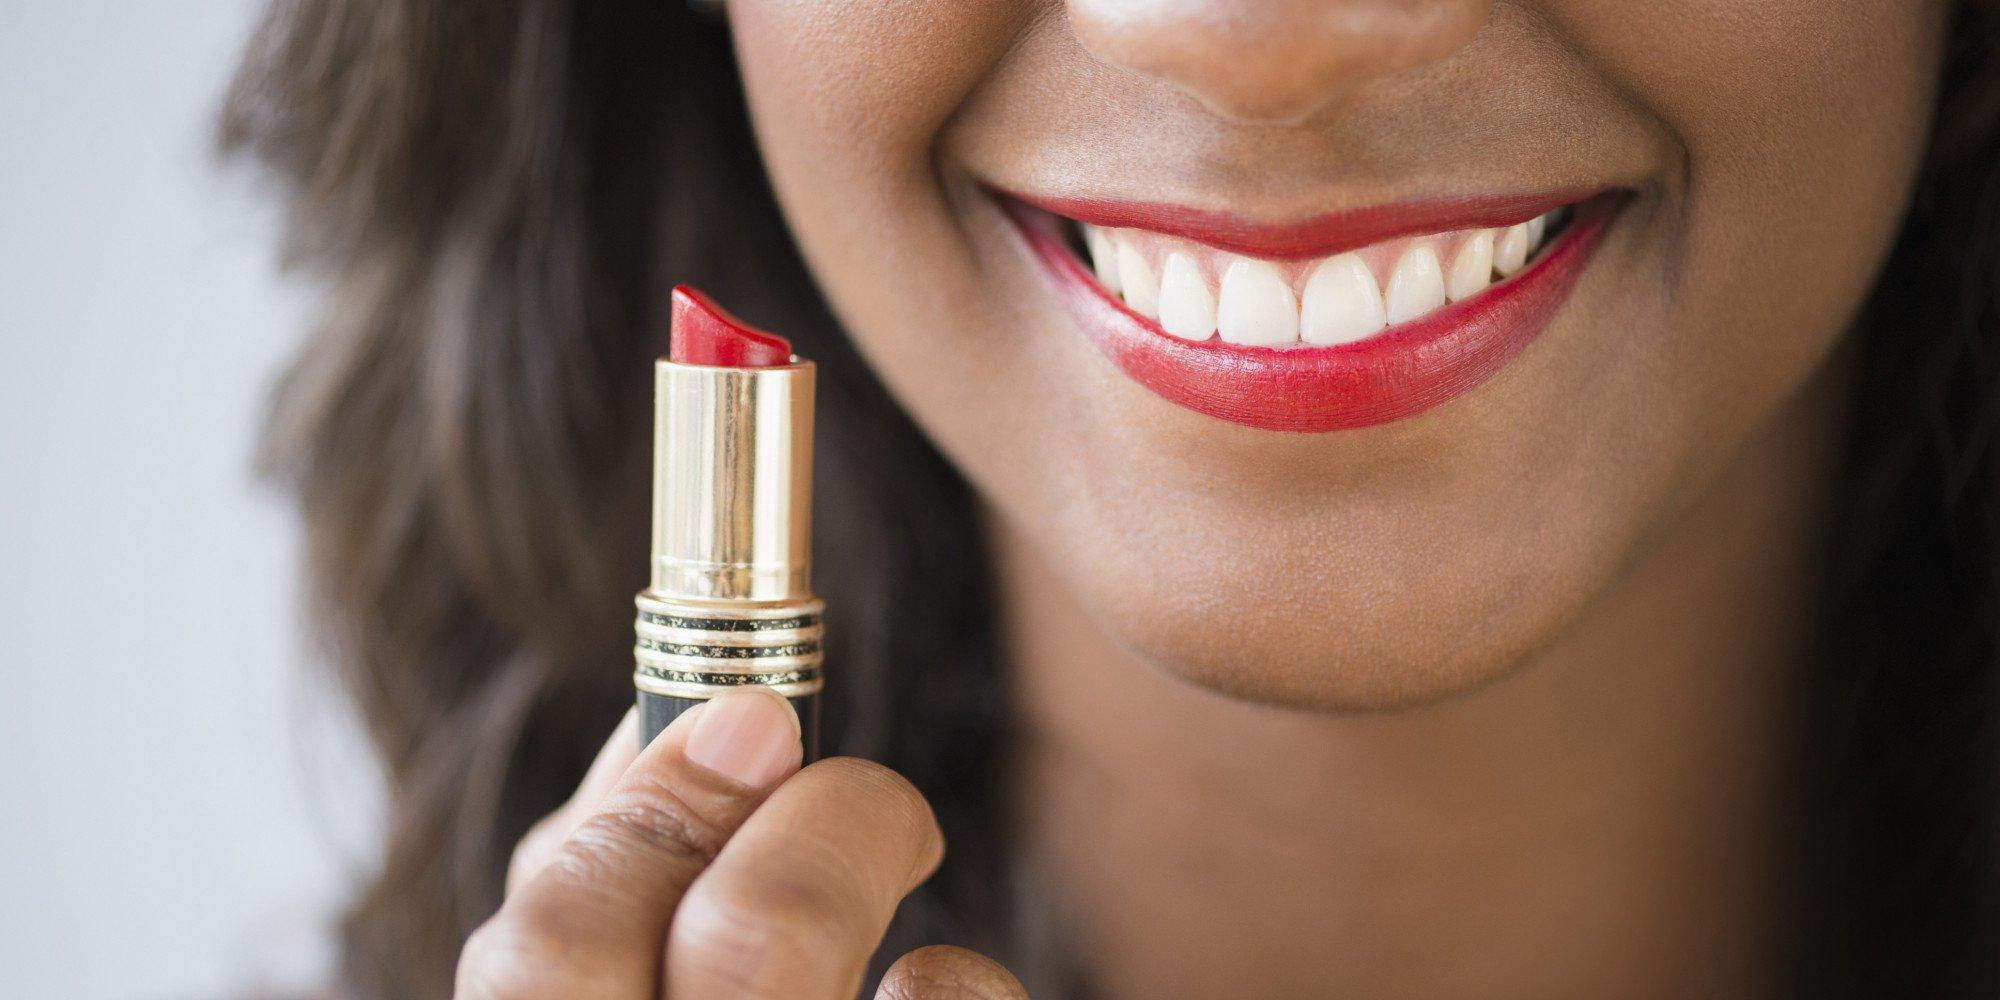 18 Lipstick Brands Full With Cancerous Chemicals